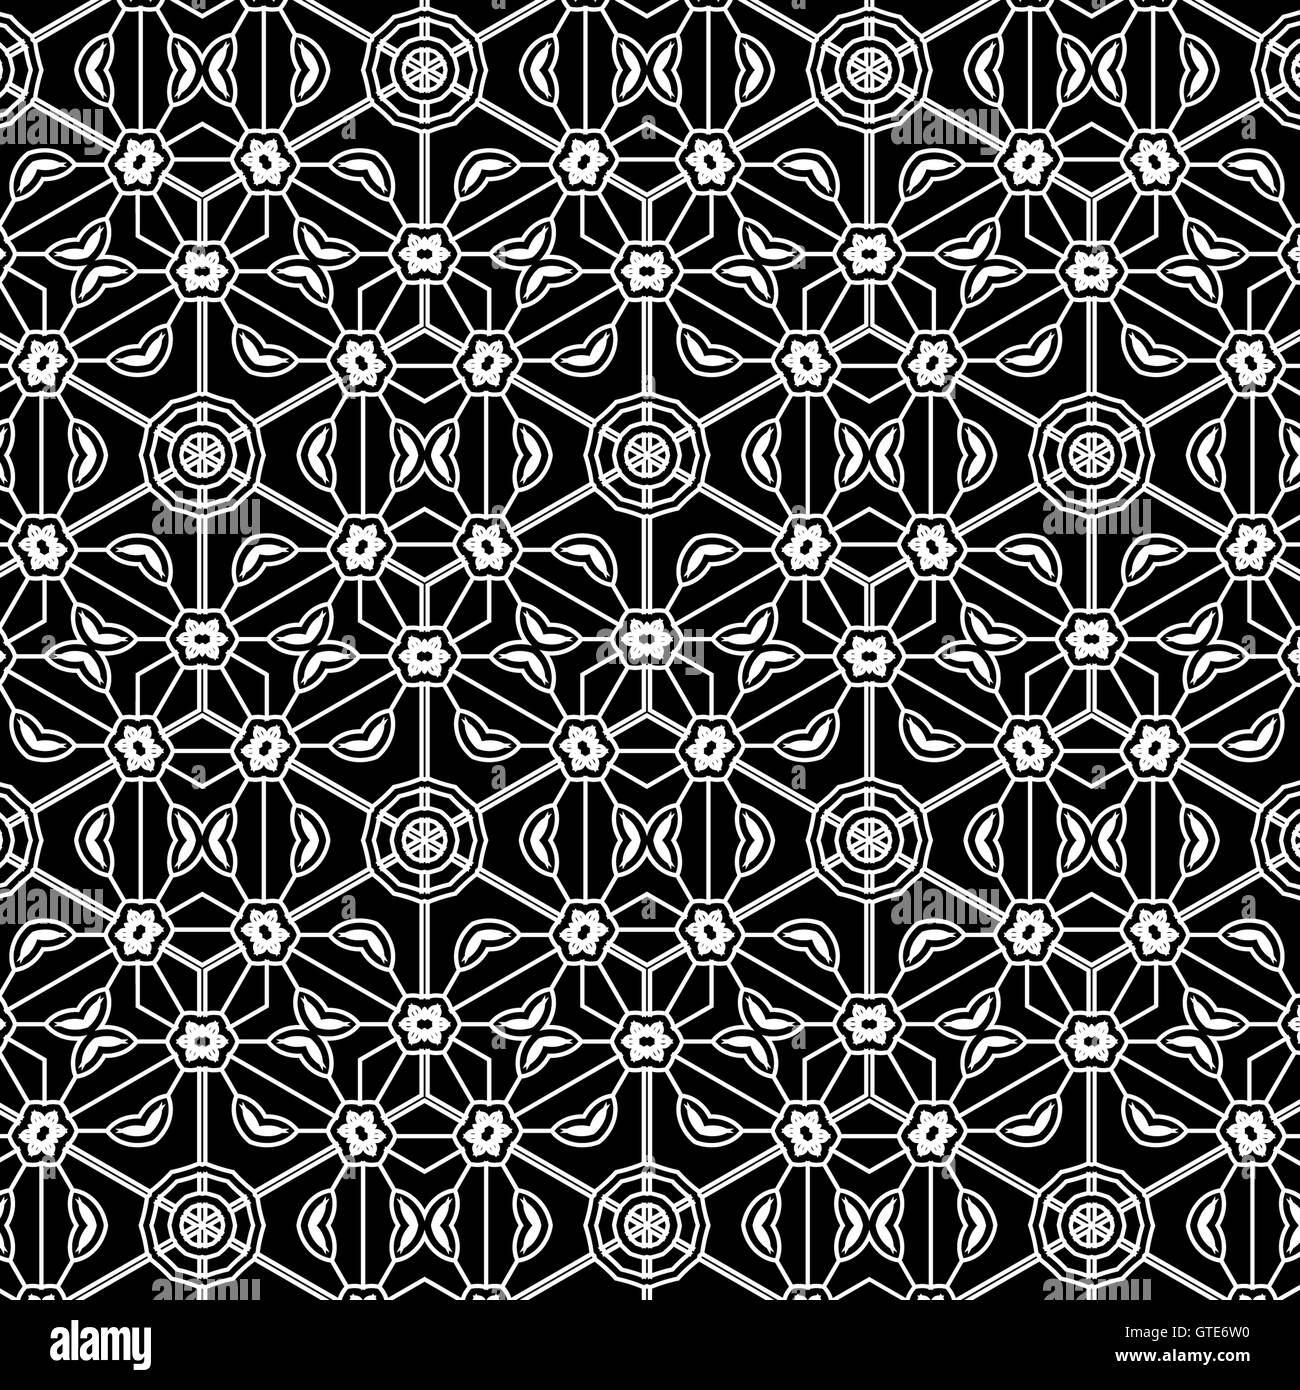 Primitive simple grey retro lace pattern with flowers and circles. - Stock Image